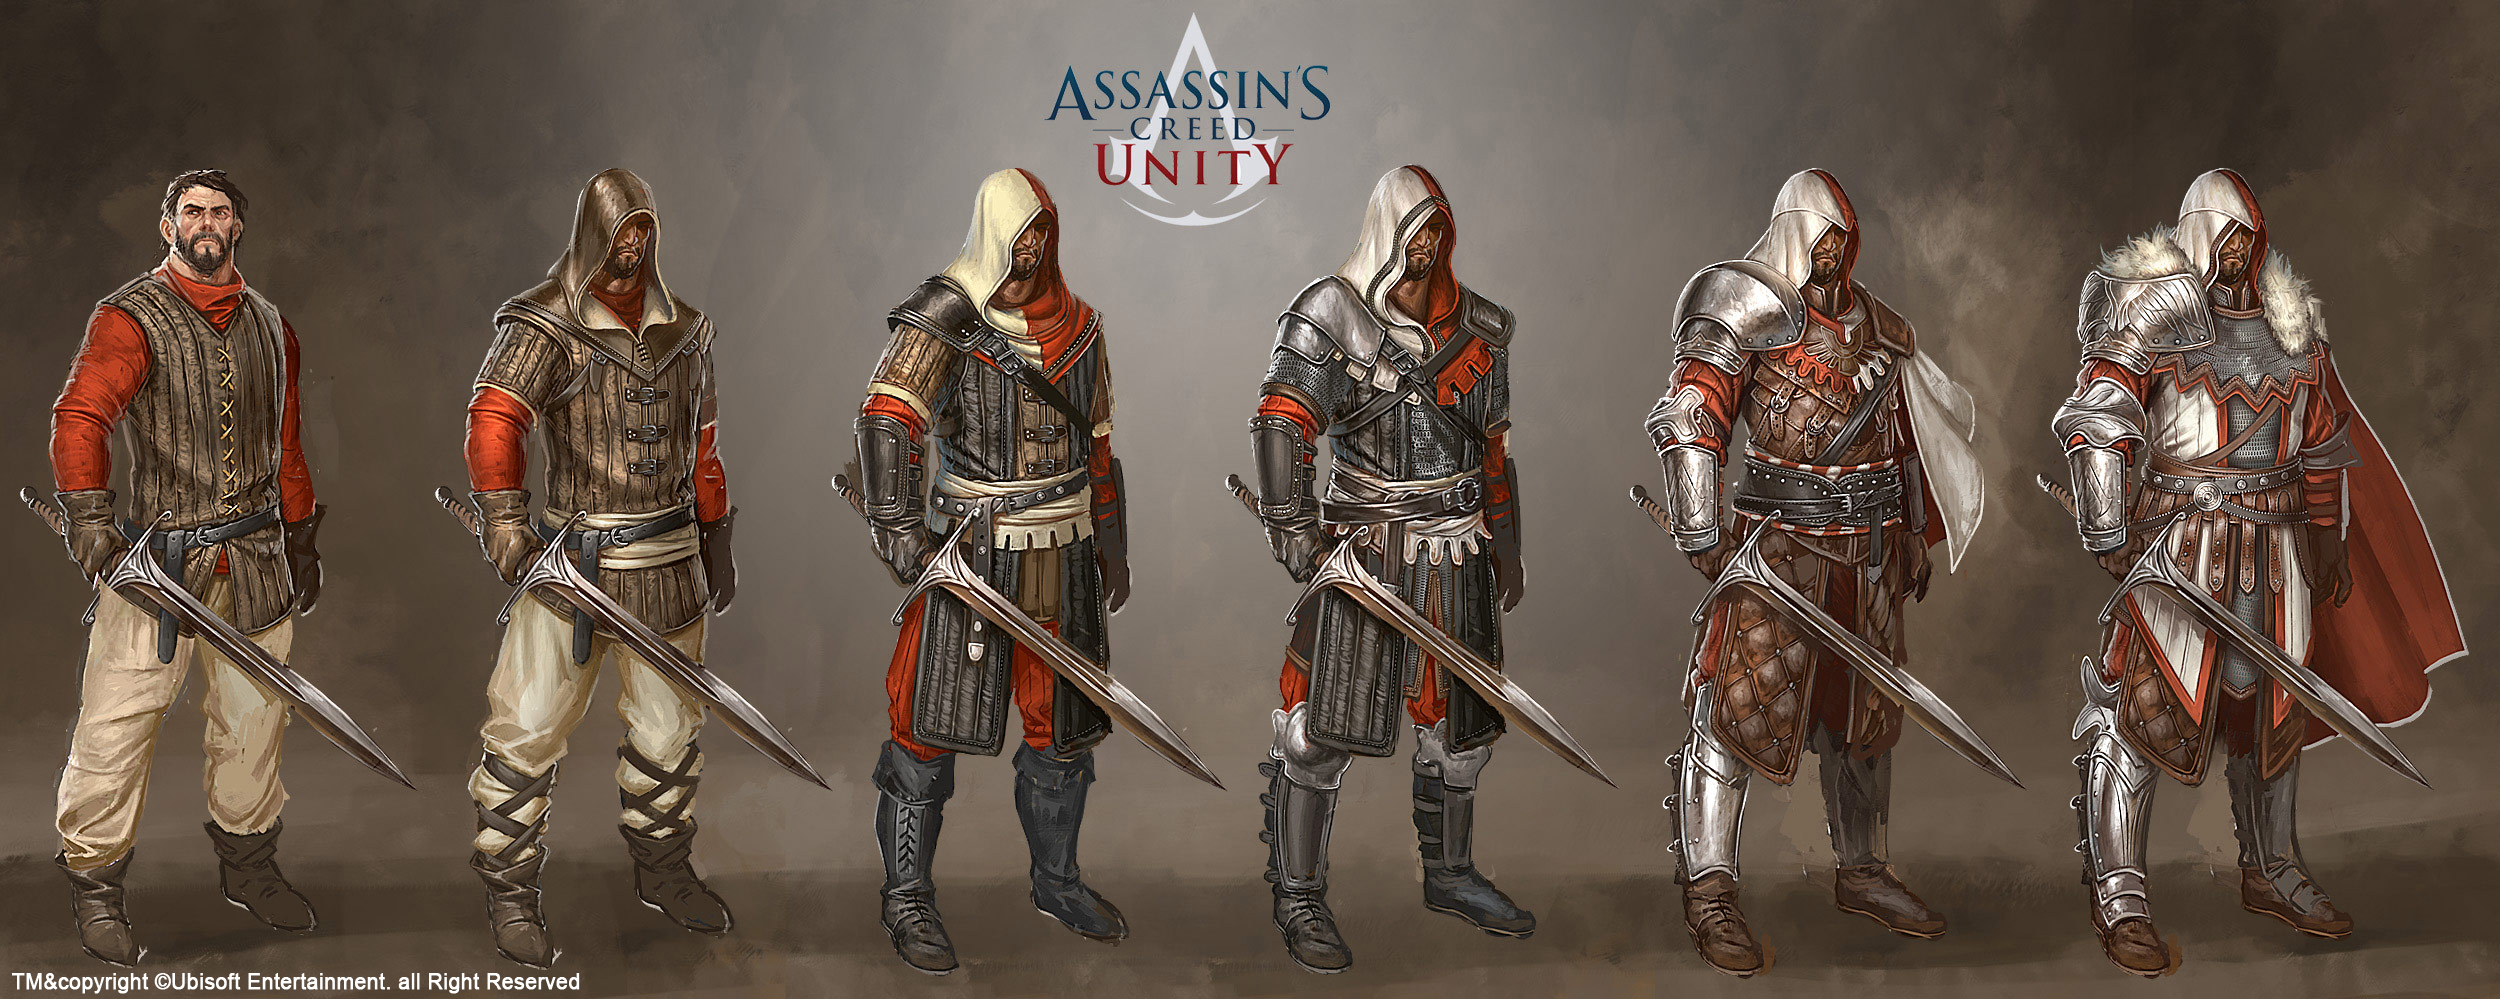 Assassin S Creed Unity Medieval Gears By Johangrenier On Deviantart